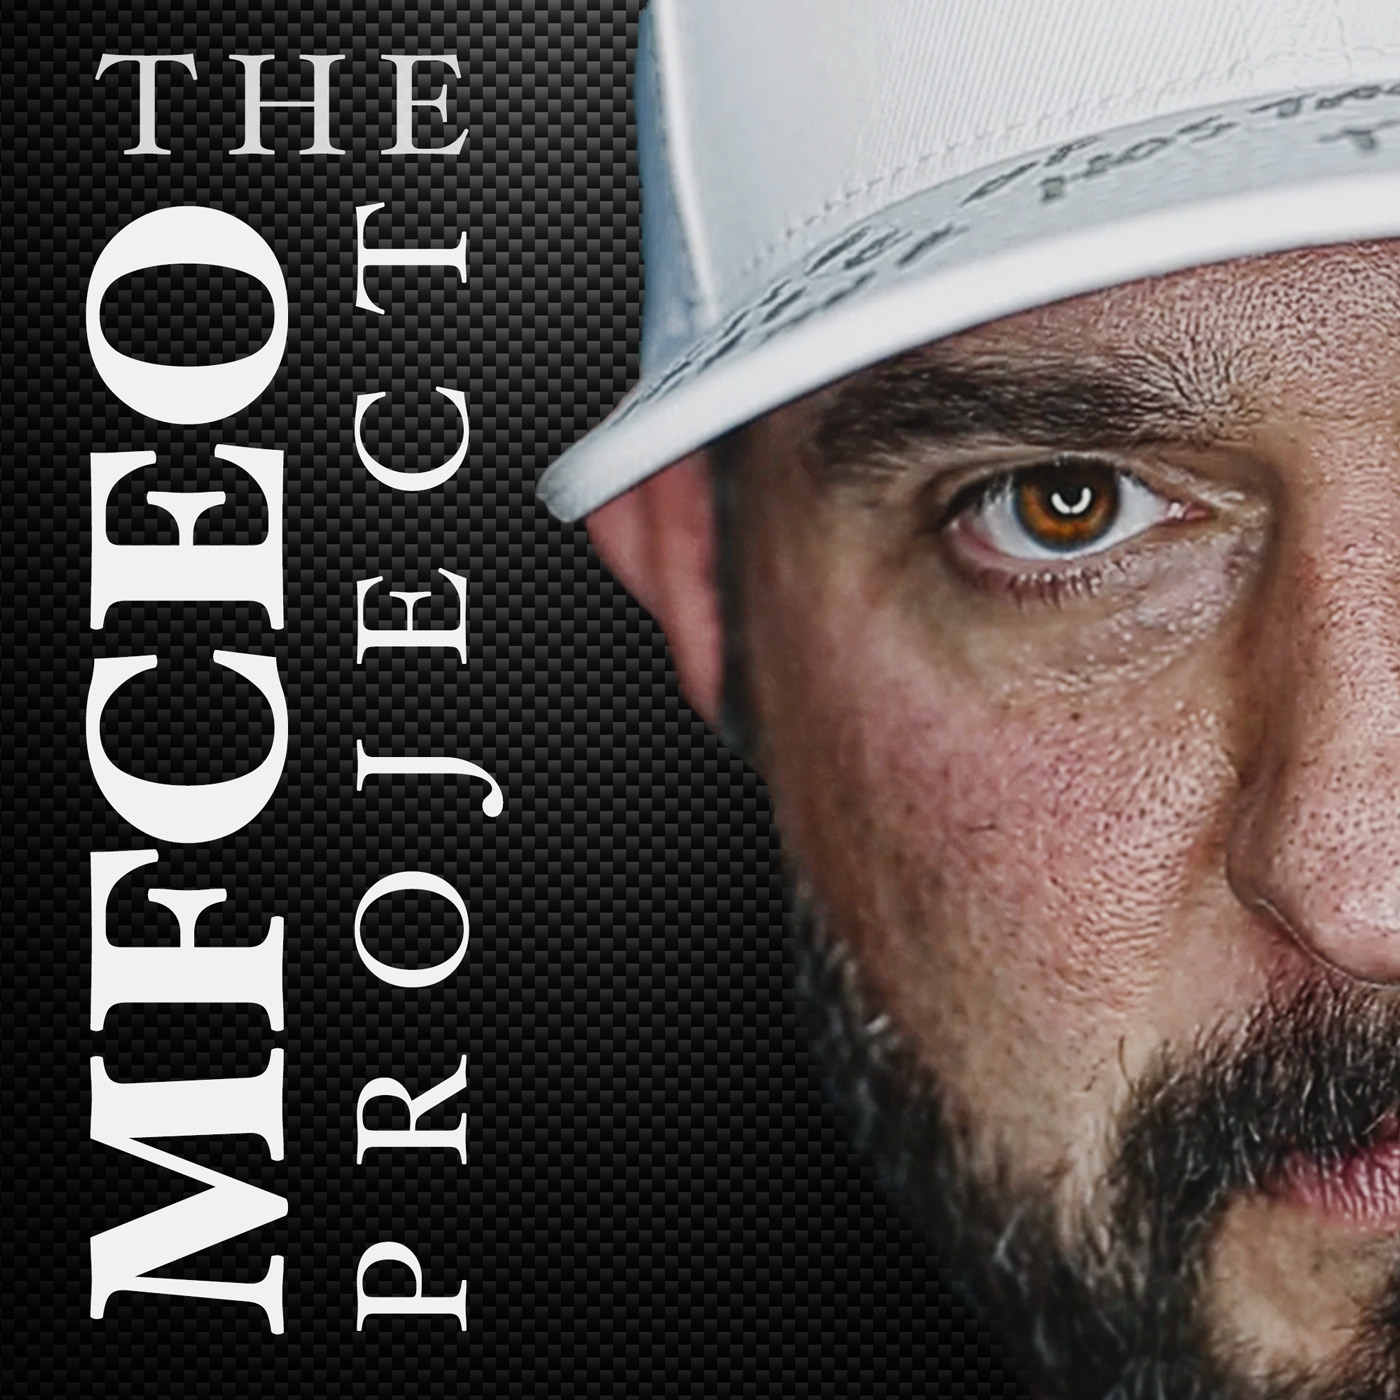 The MFCEO Project logo